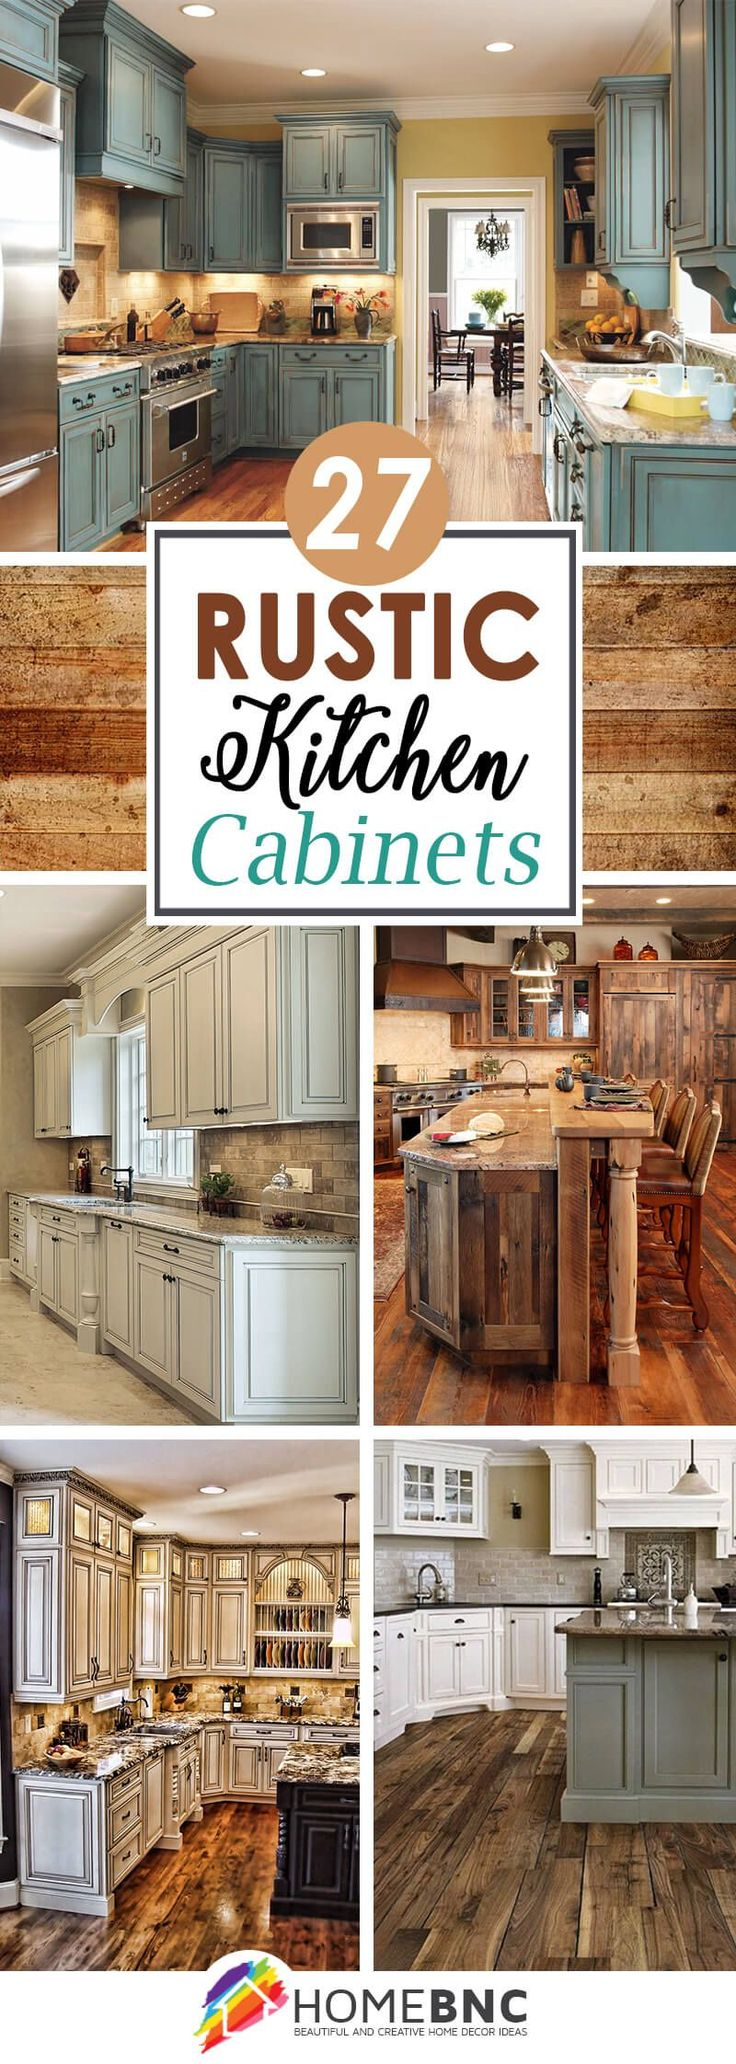 Top 25+ Best Kitchen Cabinets Ideas On Pinterest | Farm Kitchen Interior,  Farmhouse Kitchen Cabinets And Country Kitchen Plans Part 70